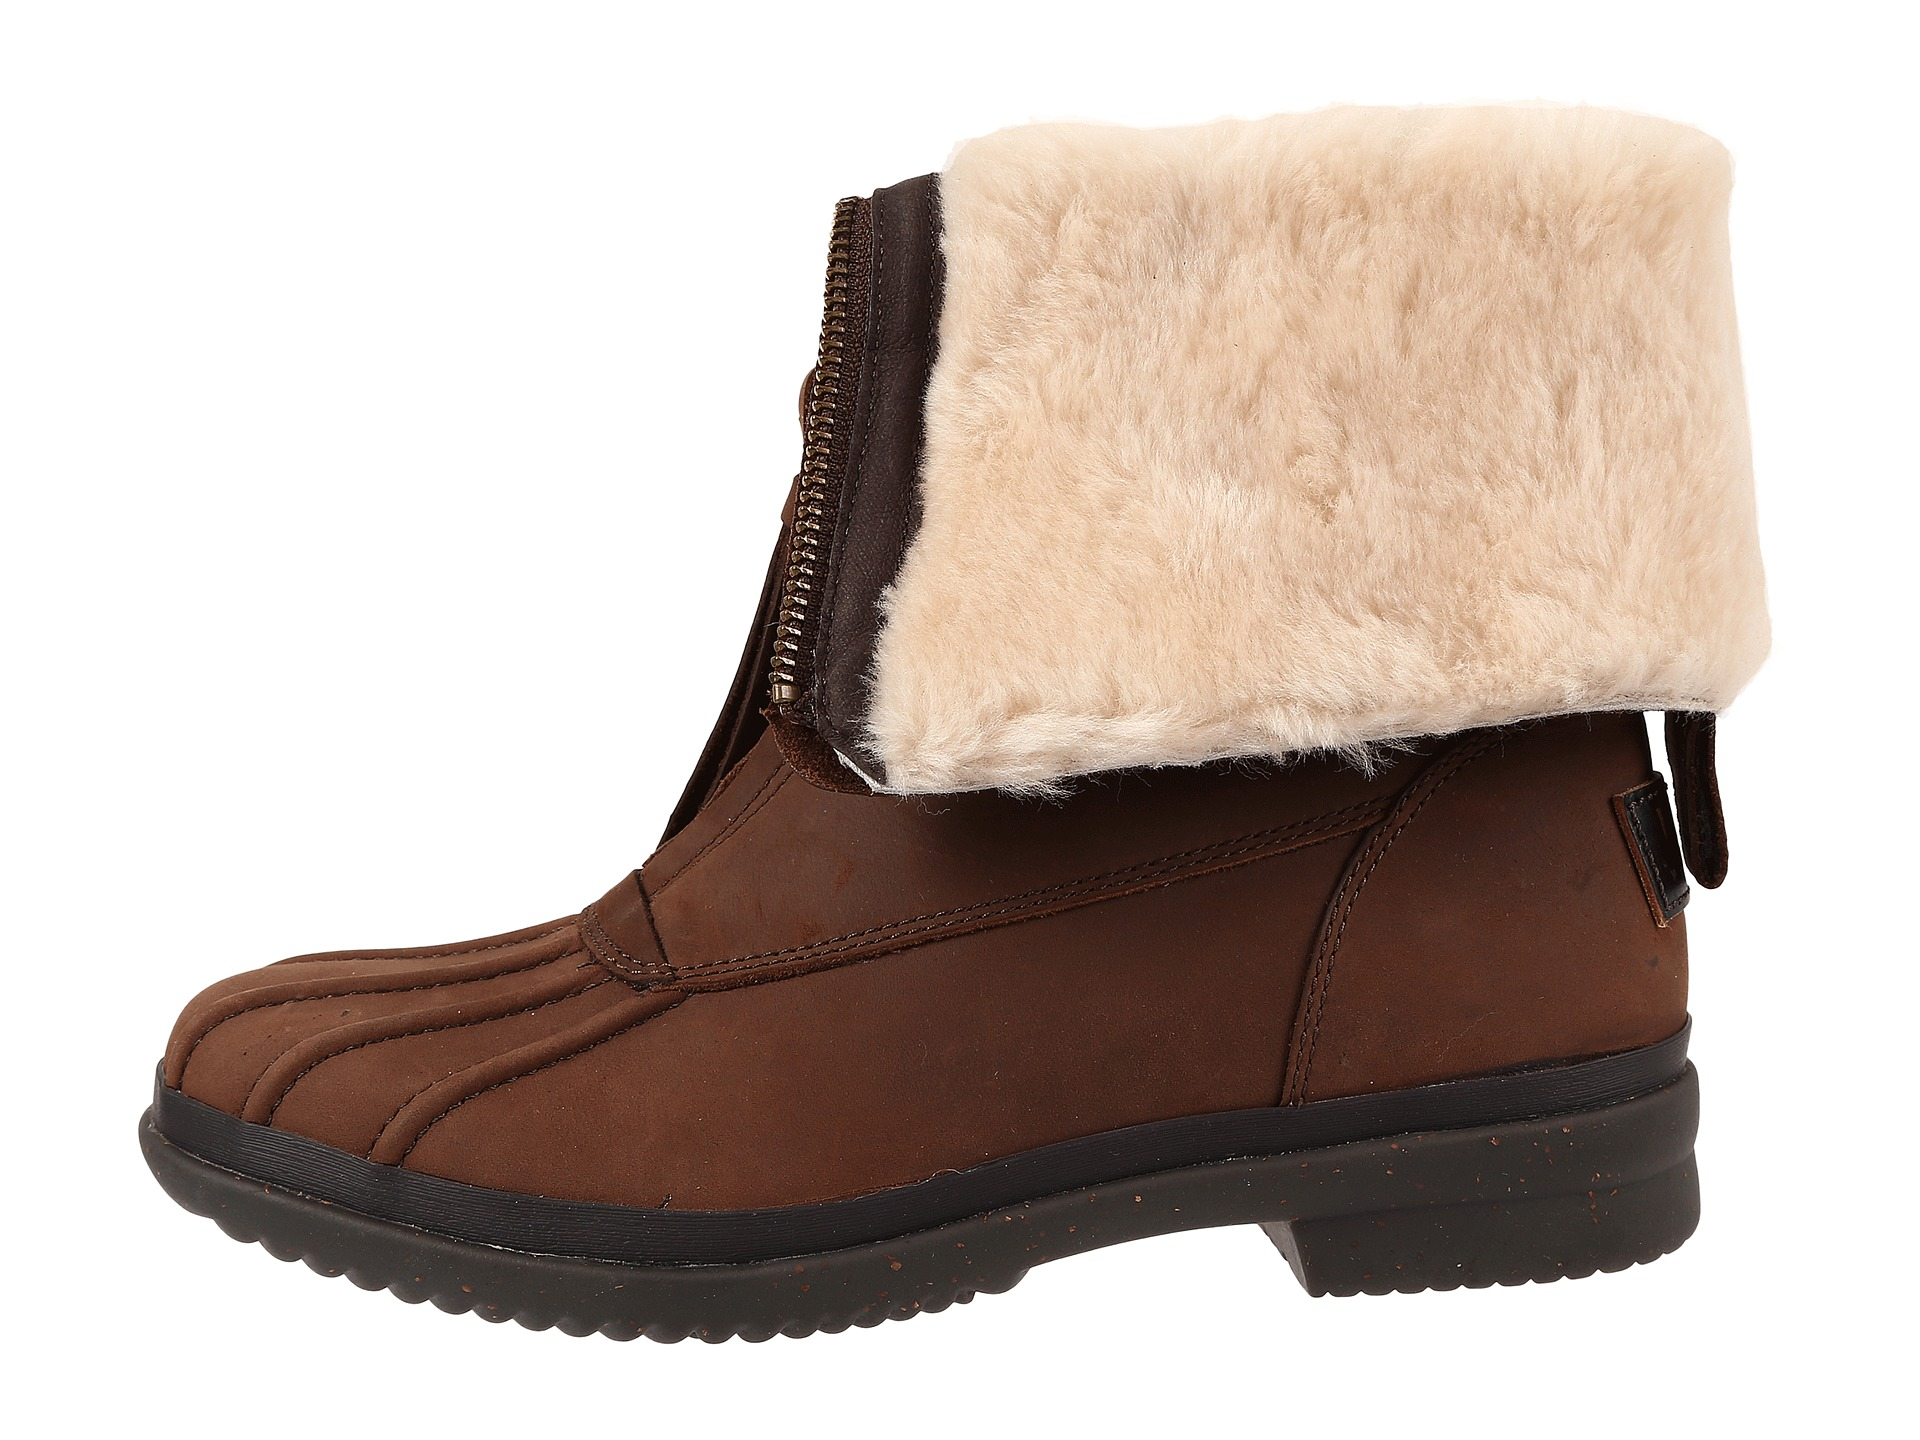 ugg boots under 100 pounds